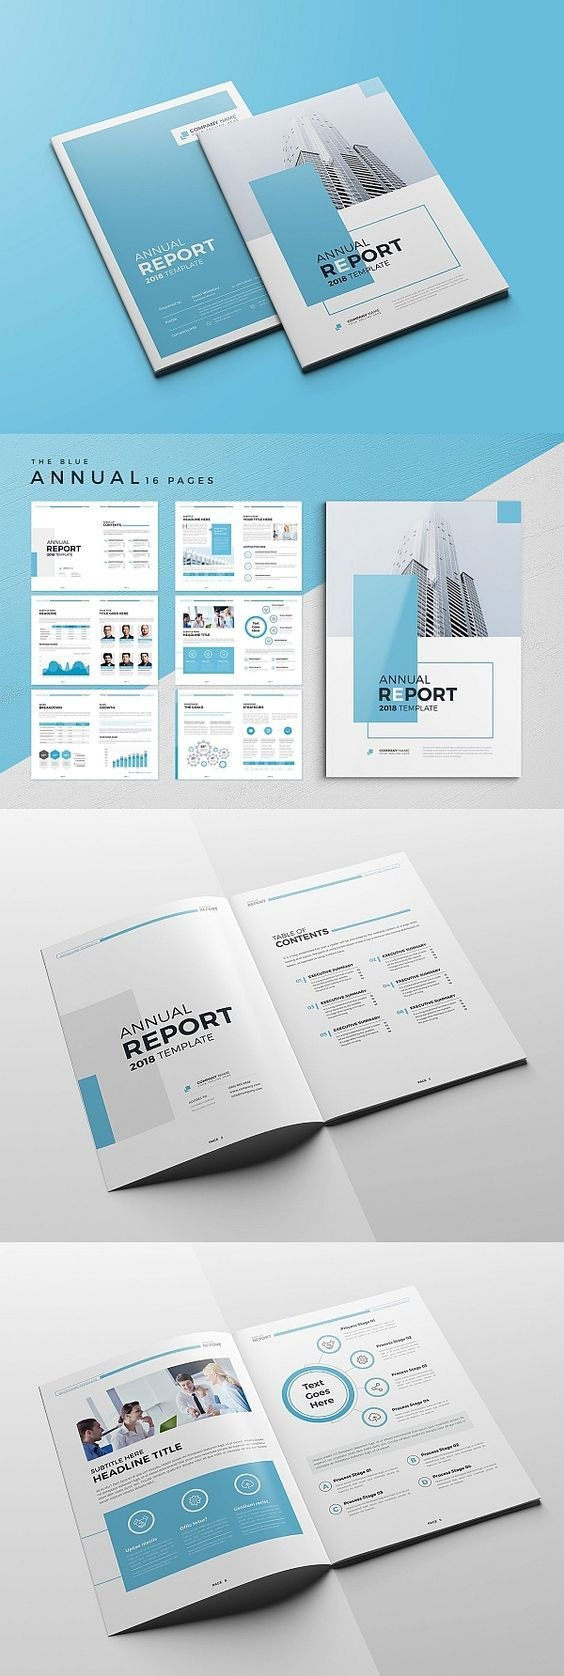 Annual Report Template Word Meetpaulryan with Hr Annual Report Template - 10+ Professional Templates Ideas